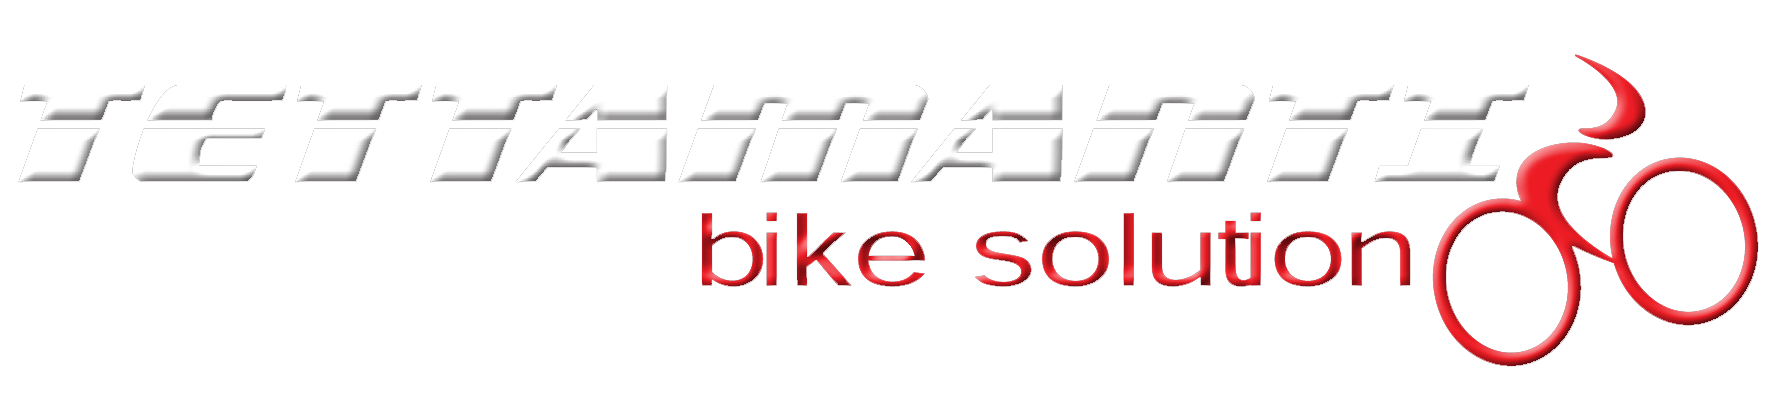 Tettamanti Bike Solution logo